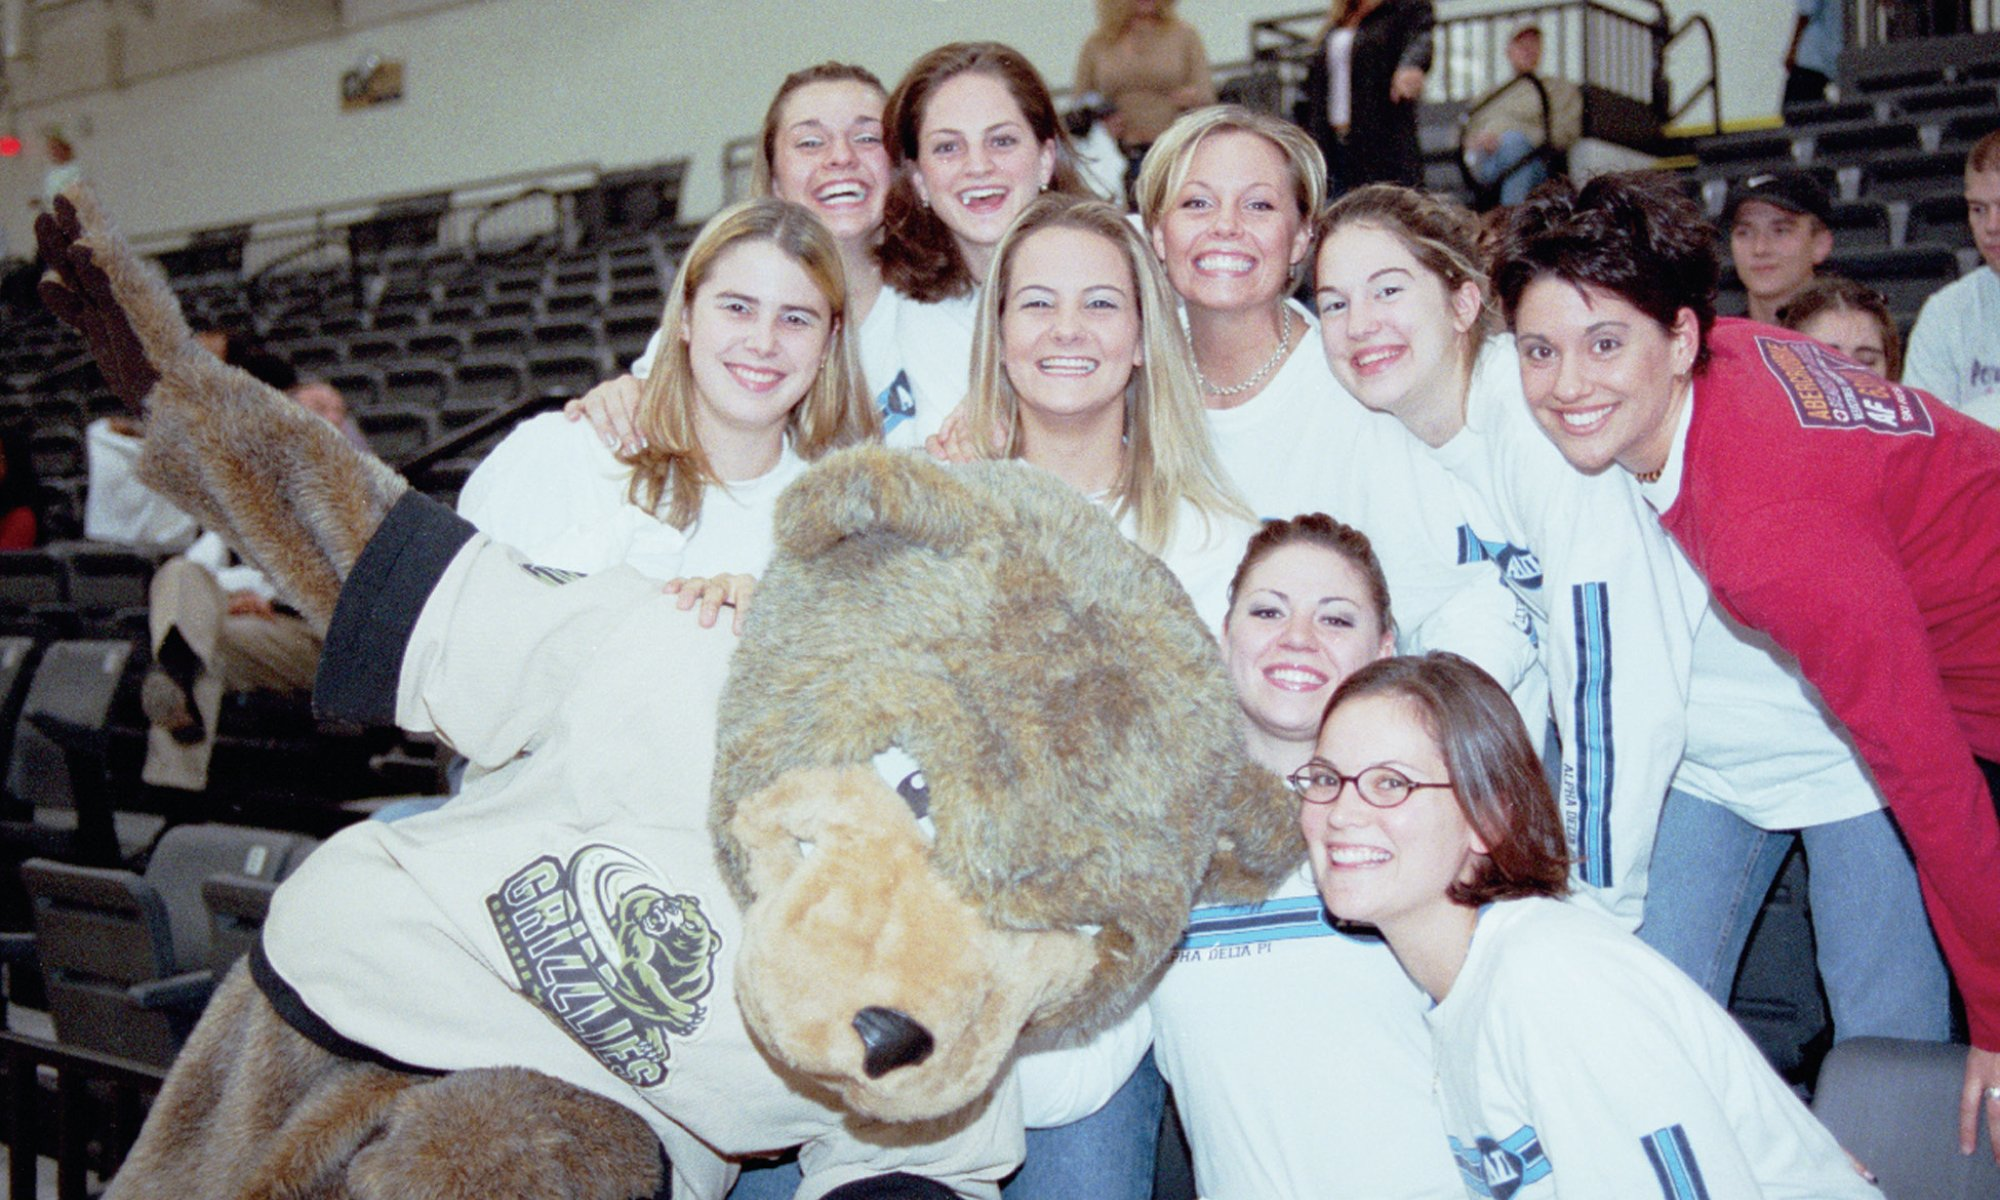 crowd of students surrounding the Grizz mascot at a sporting event